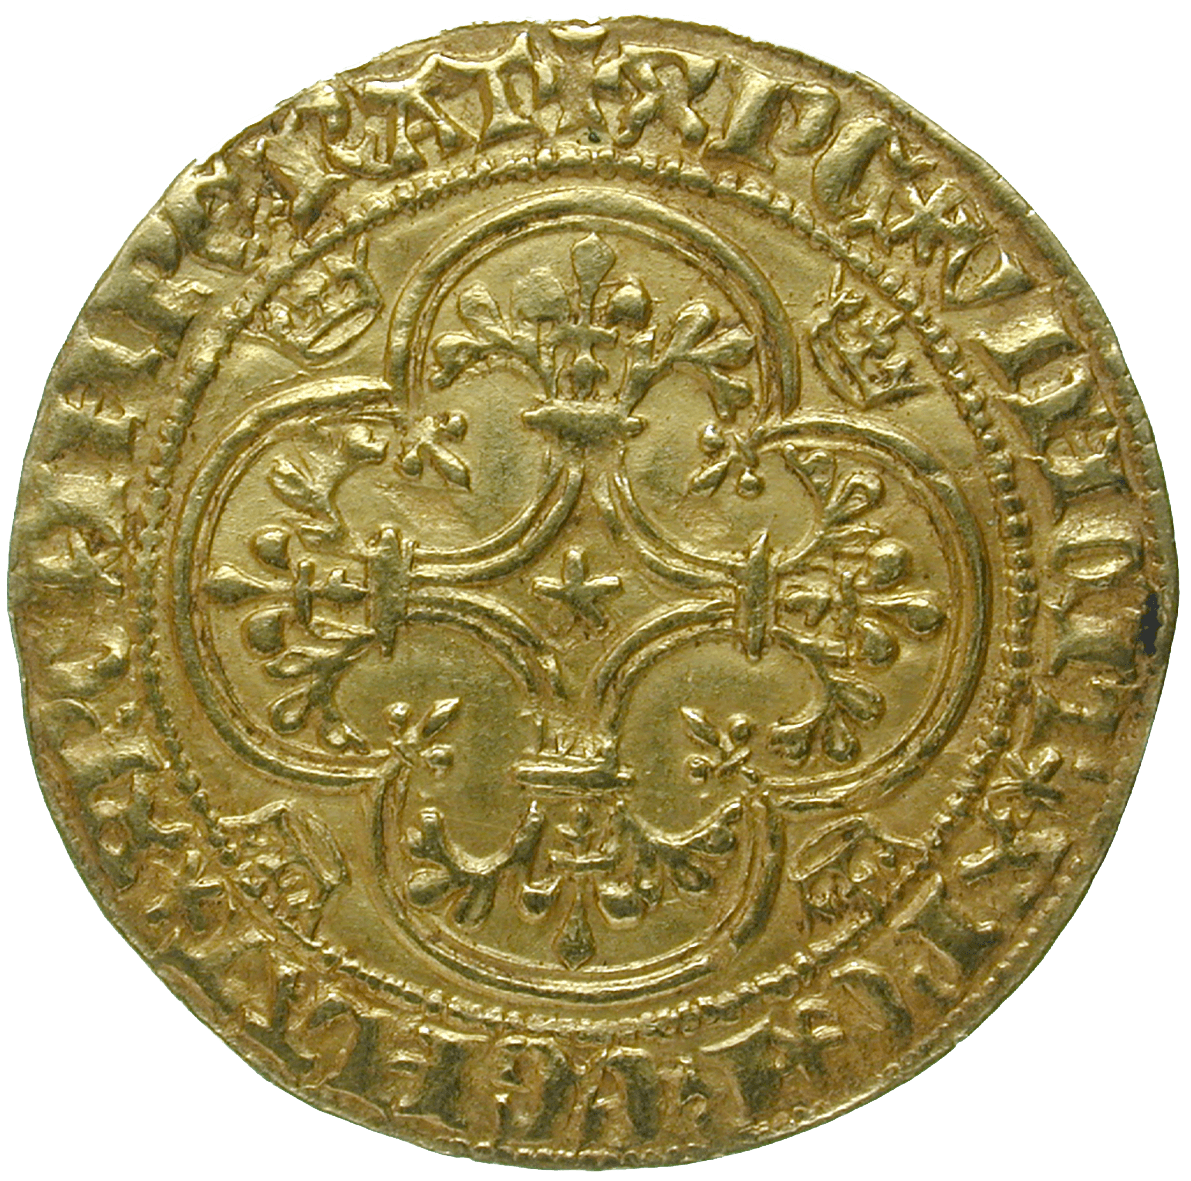 Kingdom of France, Charles VI, Ecu d'or à la couronne (reverse)